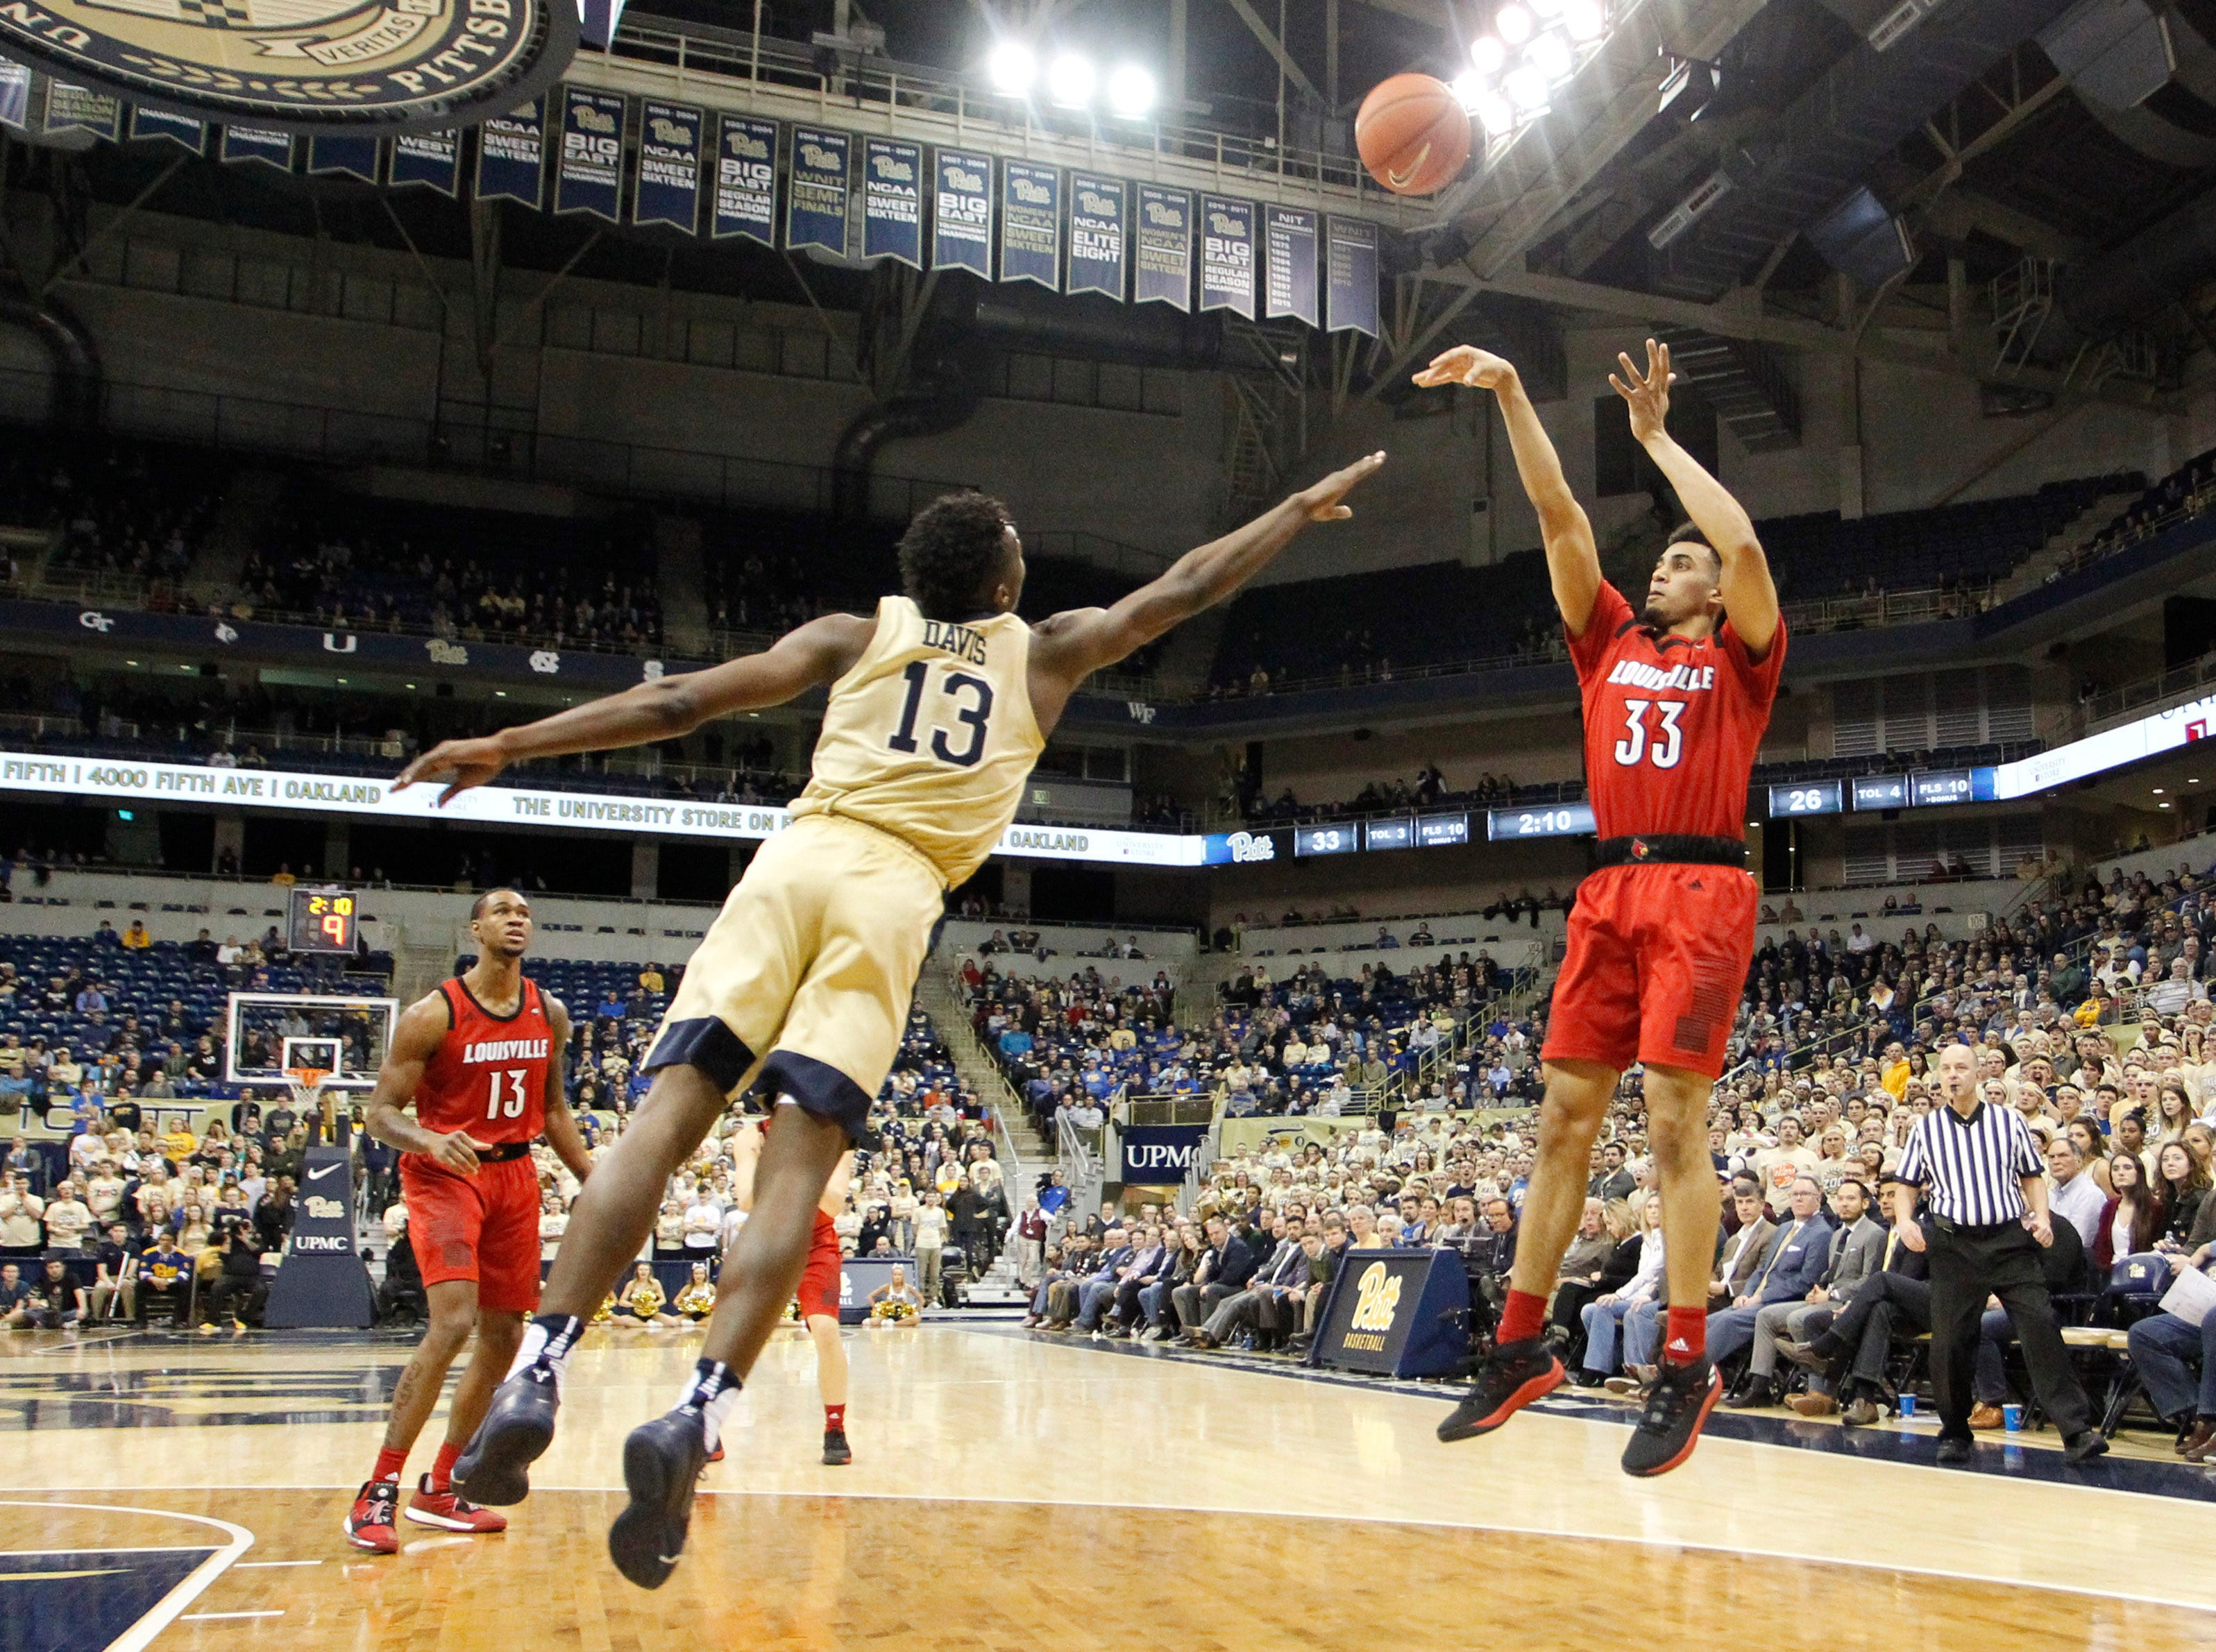 Jan 9, 2019; Pittsburgh, PA, USA;  Louisville Cardinals forward Jordan Nwora (33) shoots against Pittsburgh Panthers guard Khameron Davis (13) during the first half at the Petersen Events Center.